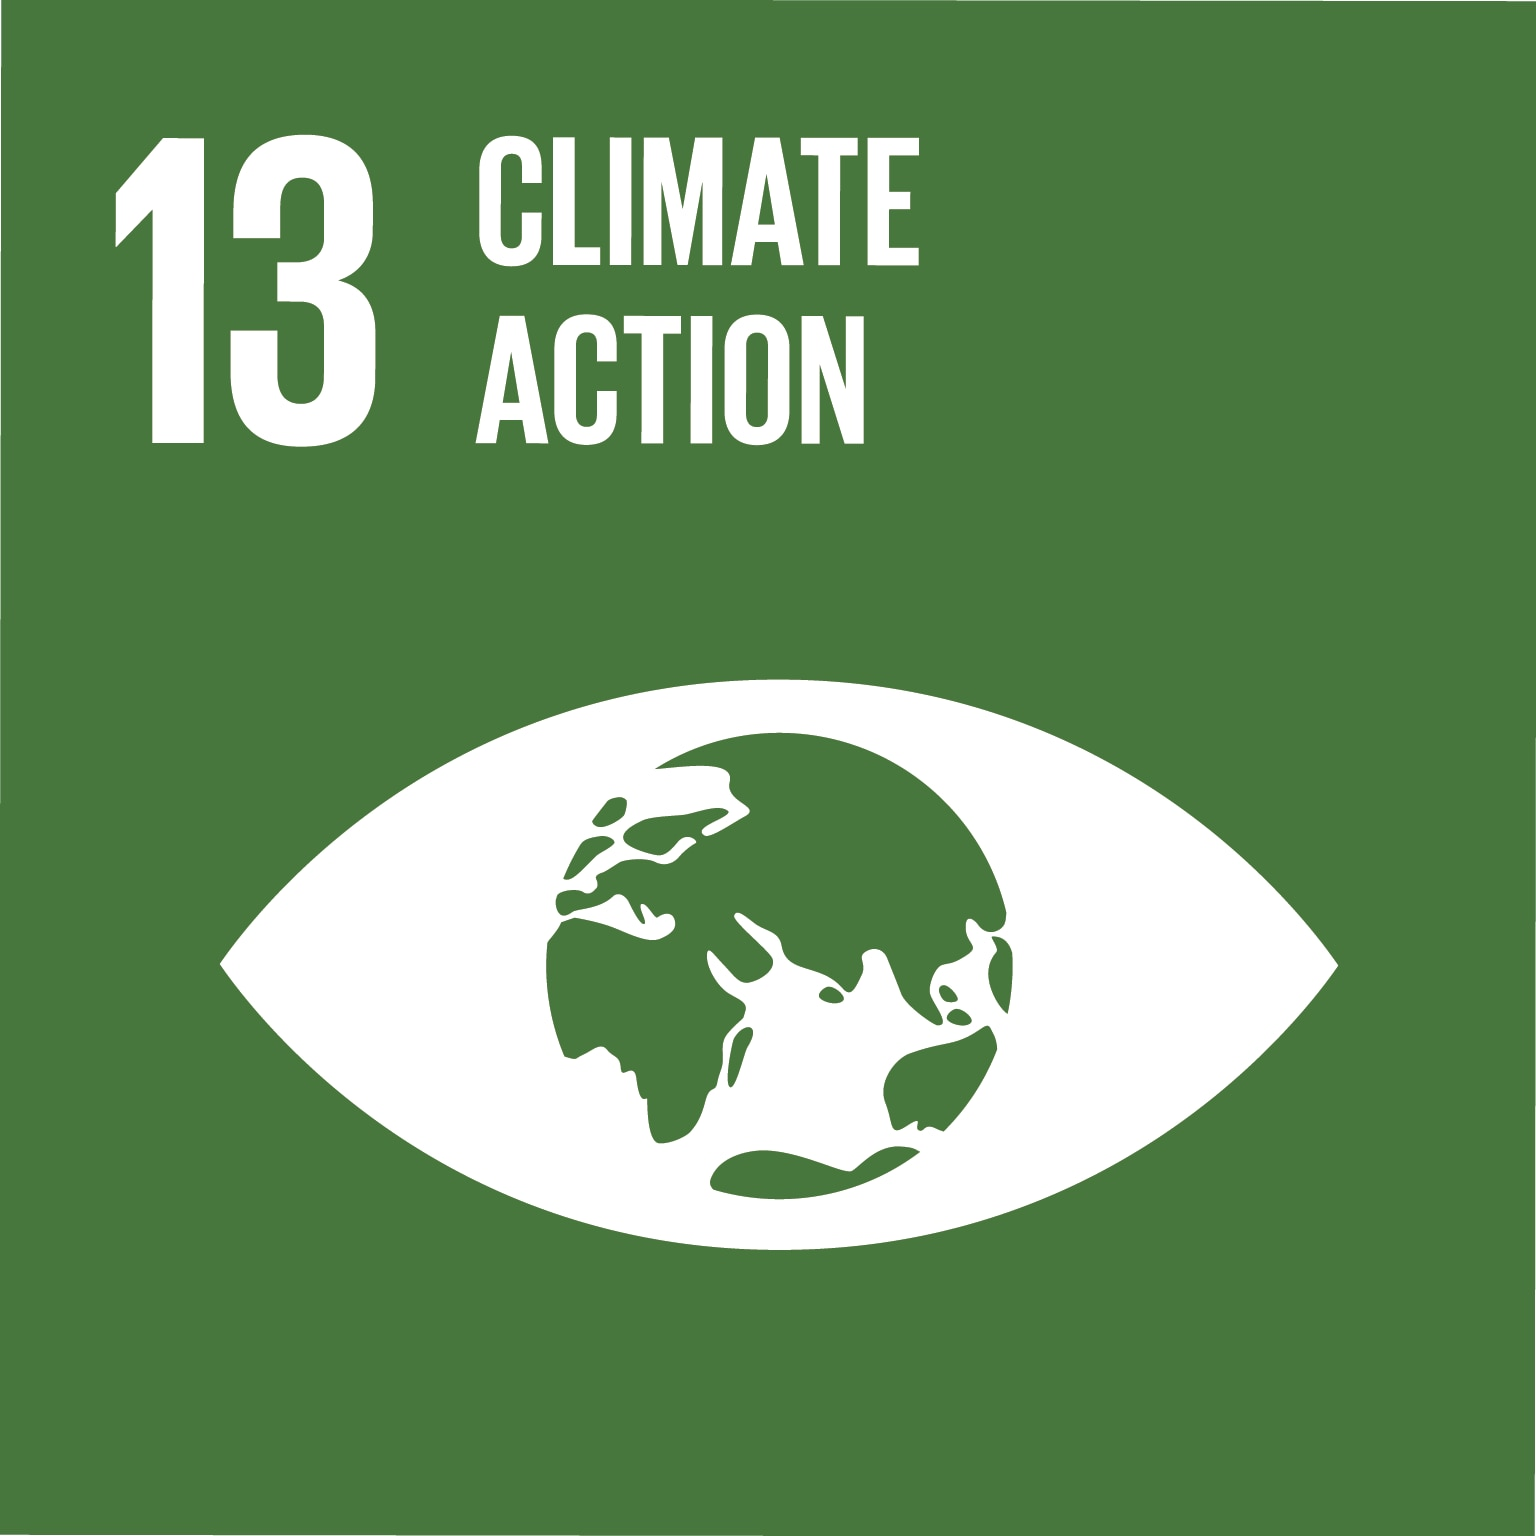 U.N. SUSTAINABLE DEVELOPMENT GOALS